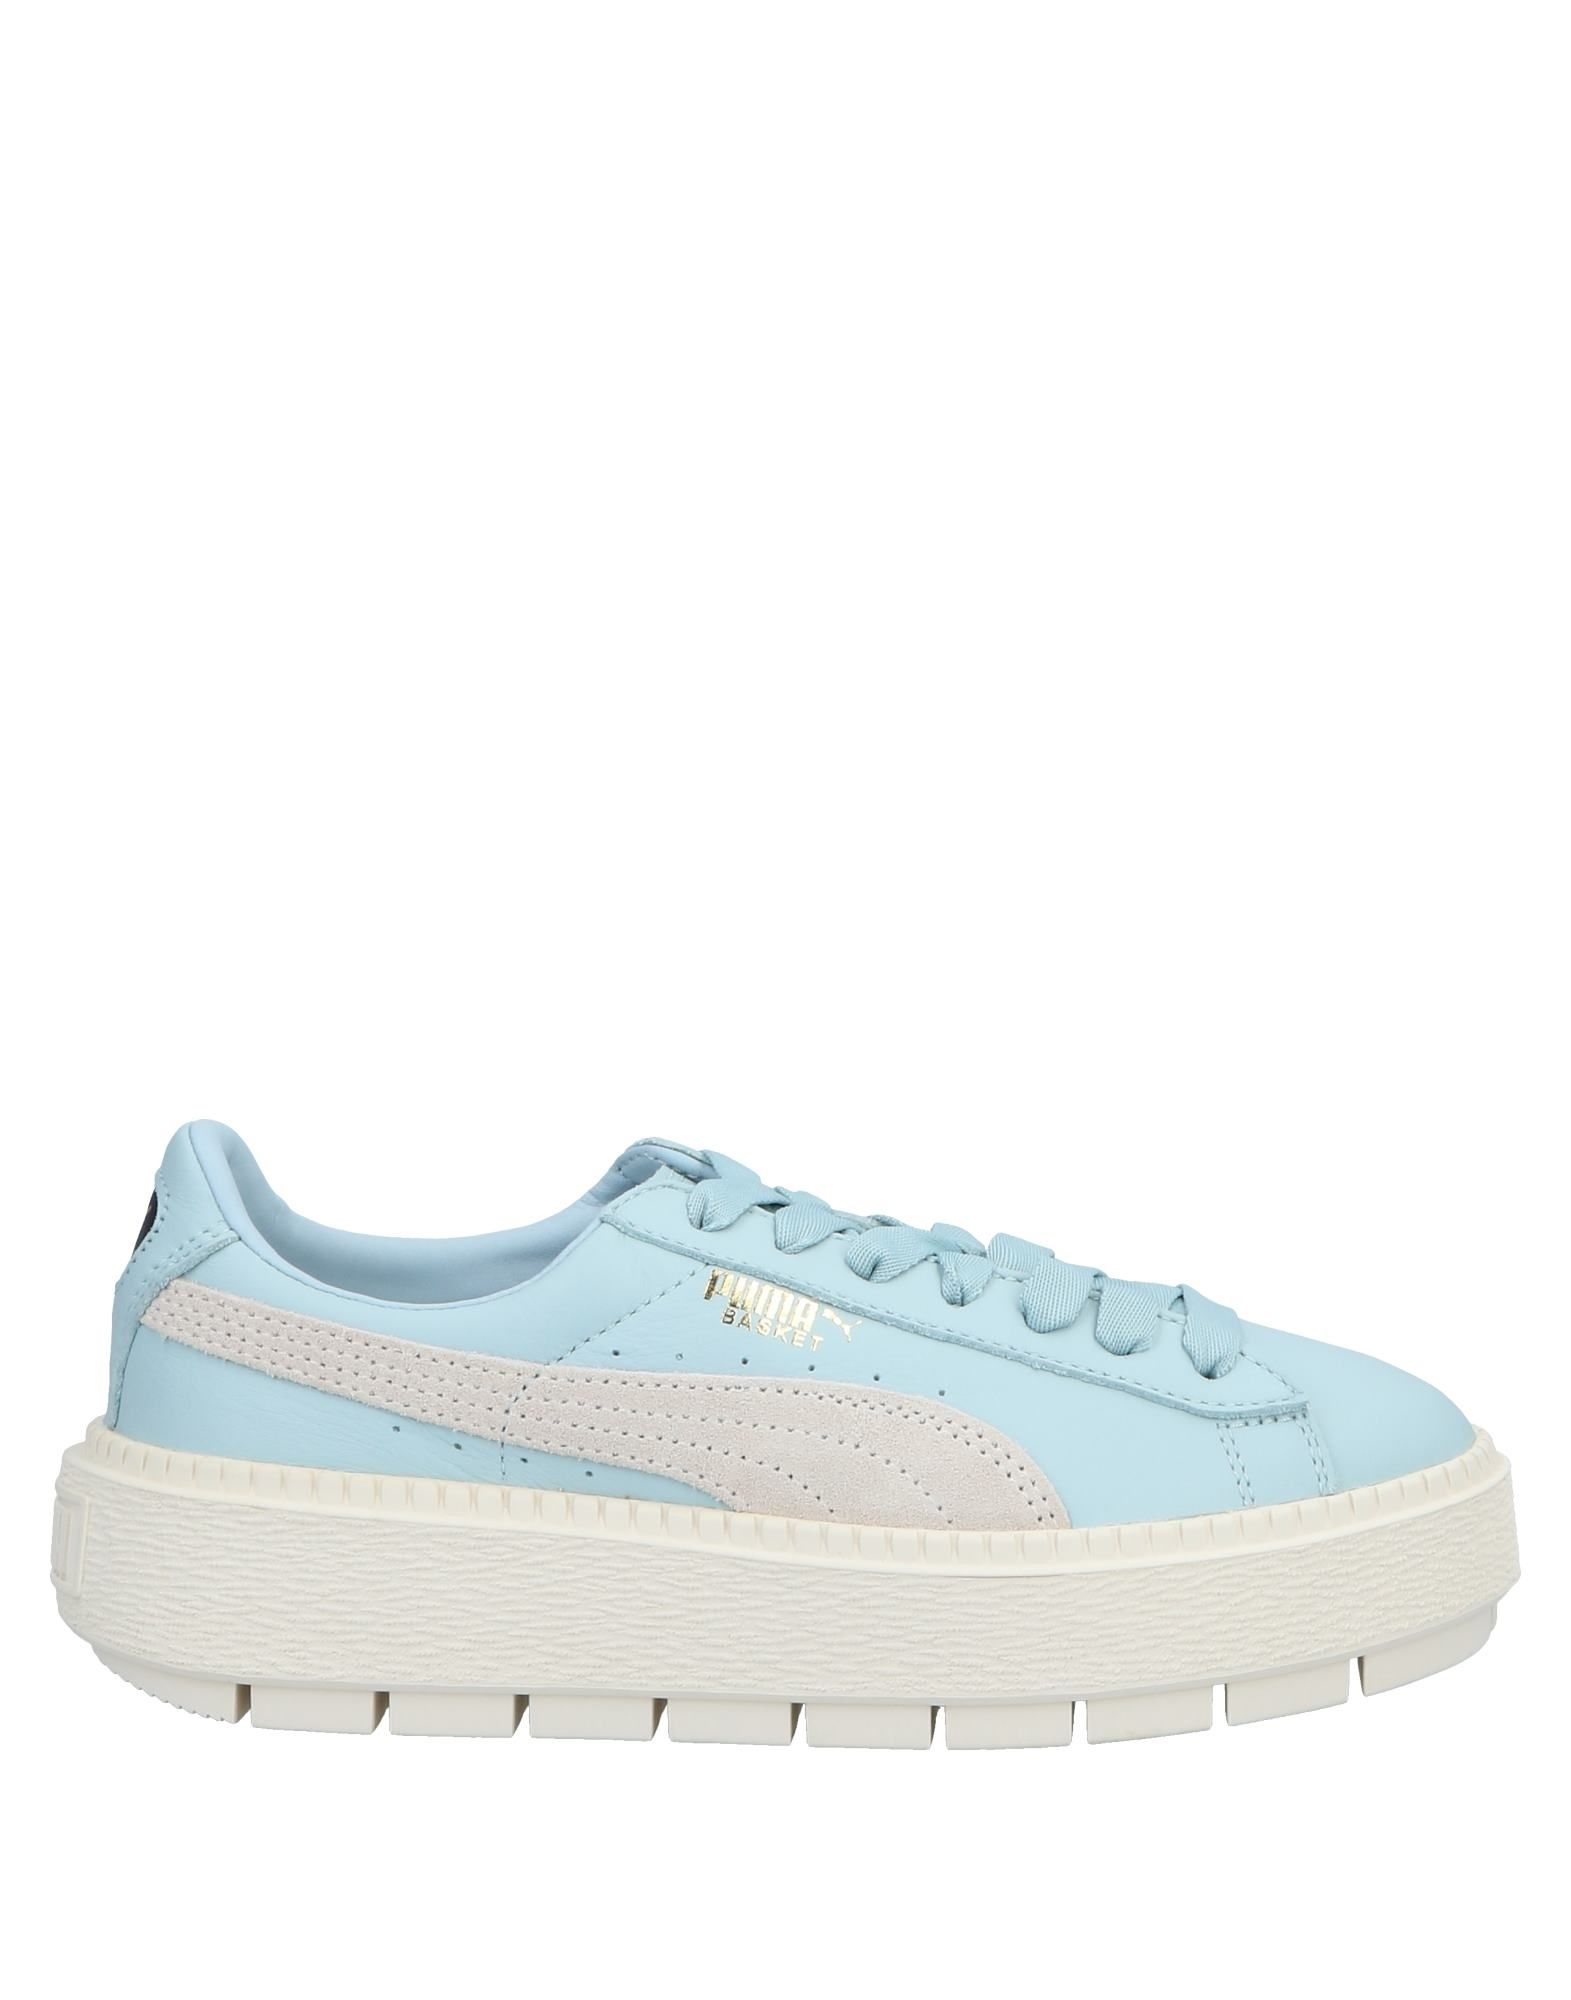 Puma on Sneakers - Women Puma Sneakers online on Puma  Canada - 11559346CR 368a20